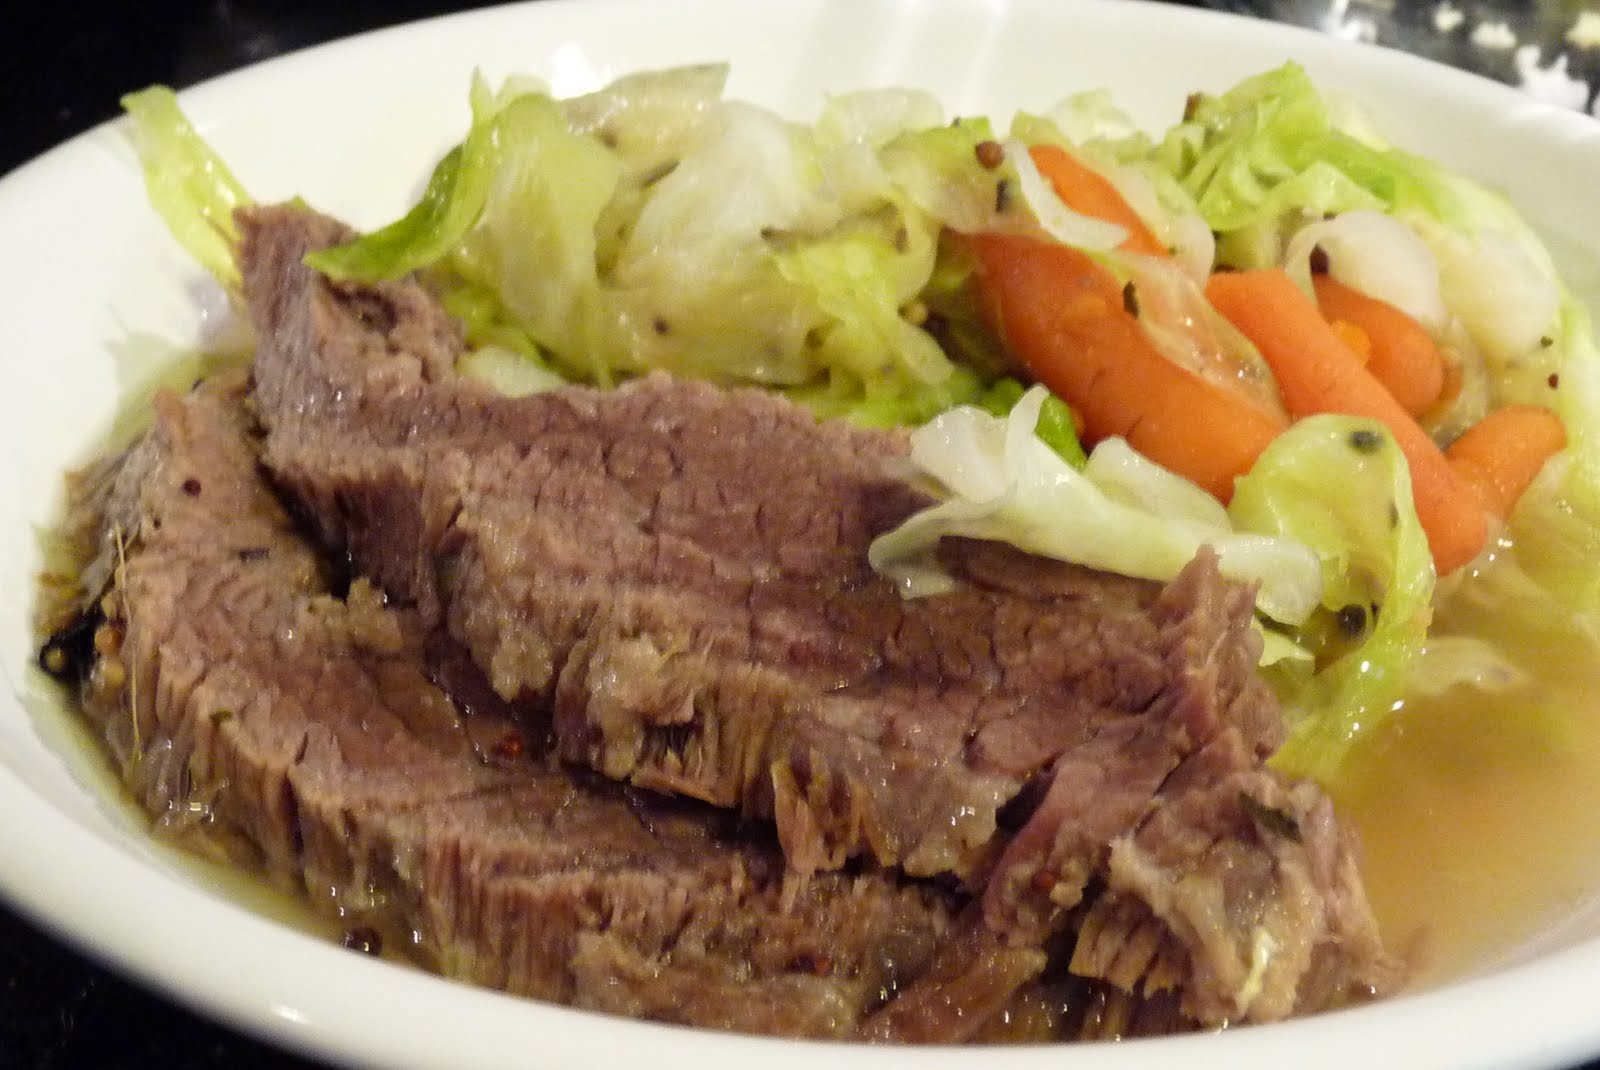 ... php on line 241 corned beef with vegetables homemade corned beef with